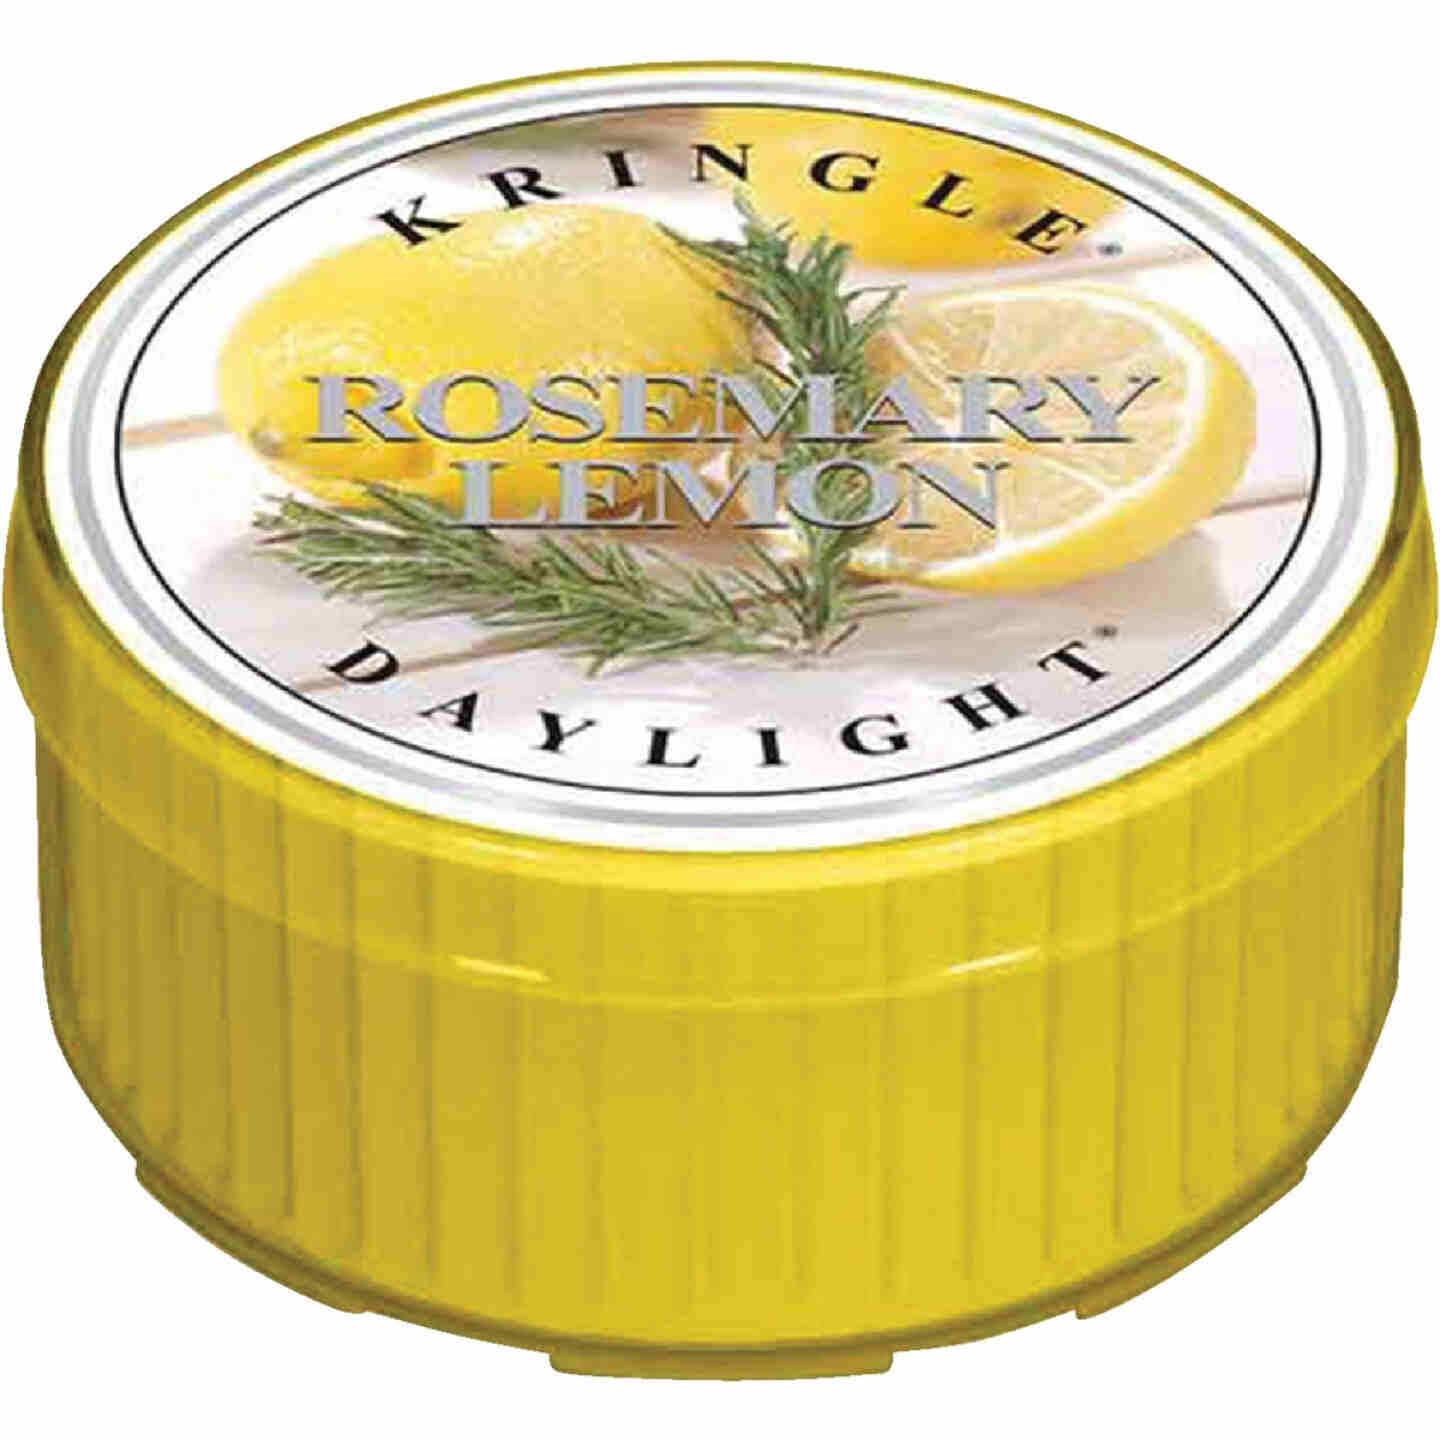 Kringle Candle Country Candle Rosemary Lemon Daylight Candle Image 1